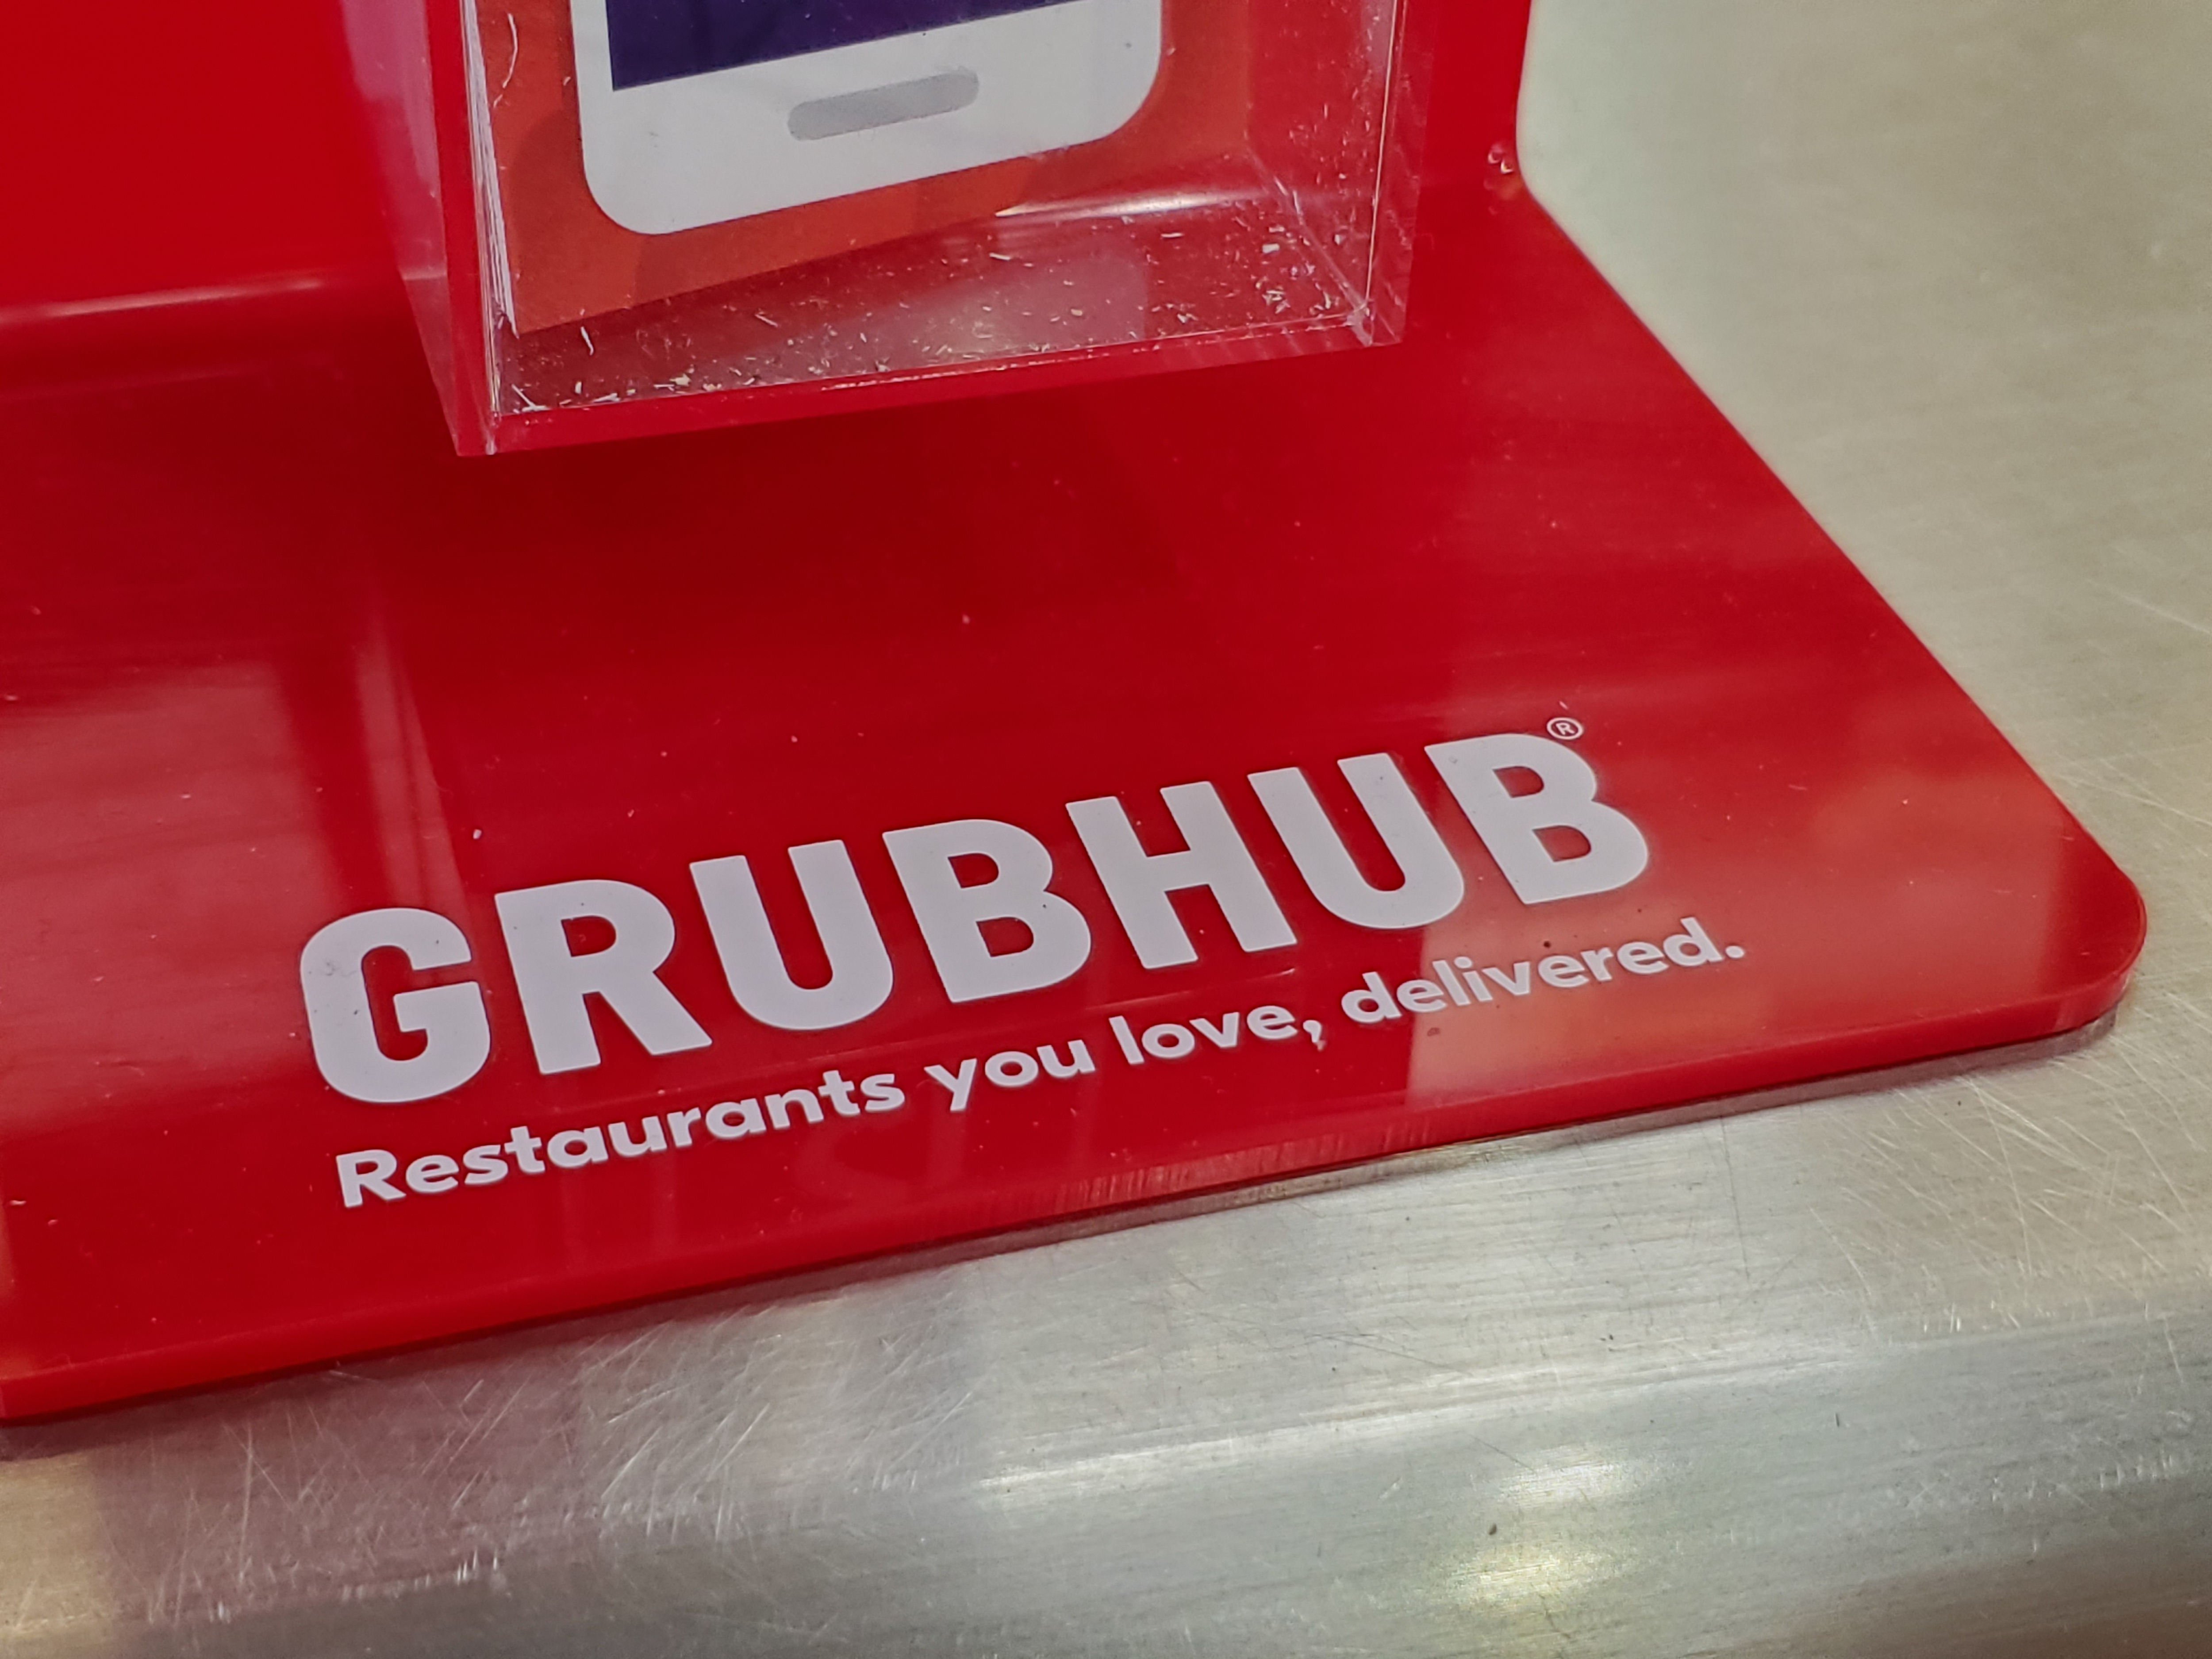 Close-up of logo for food delivery service Grubhub in a restaurant.